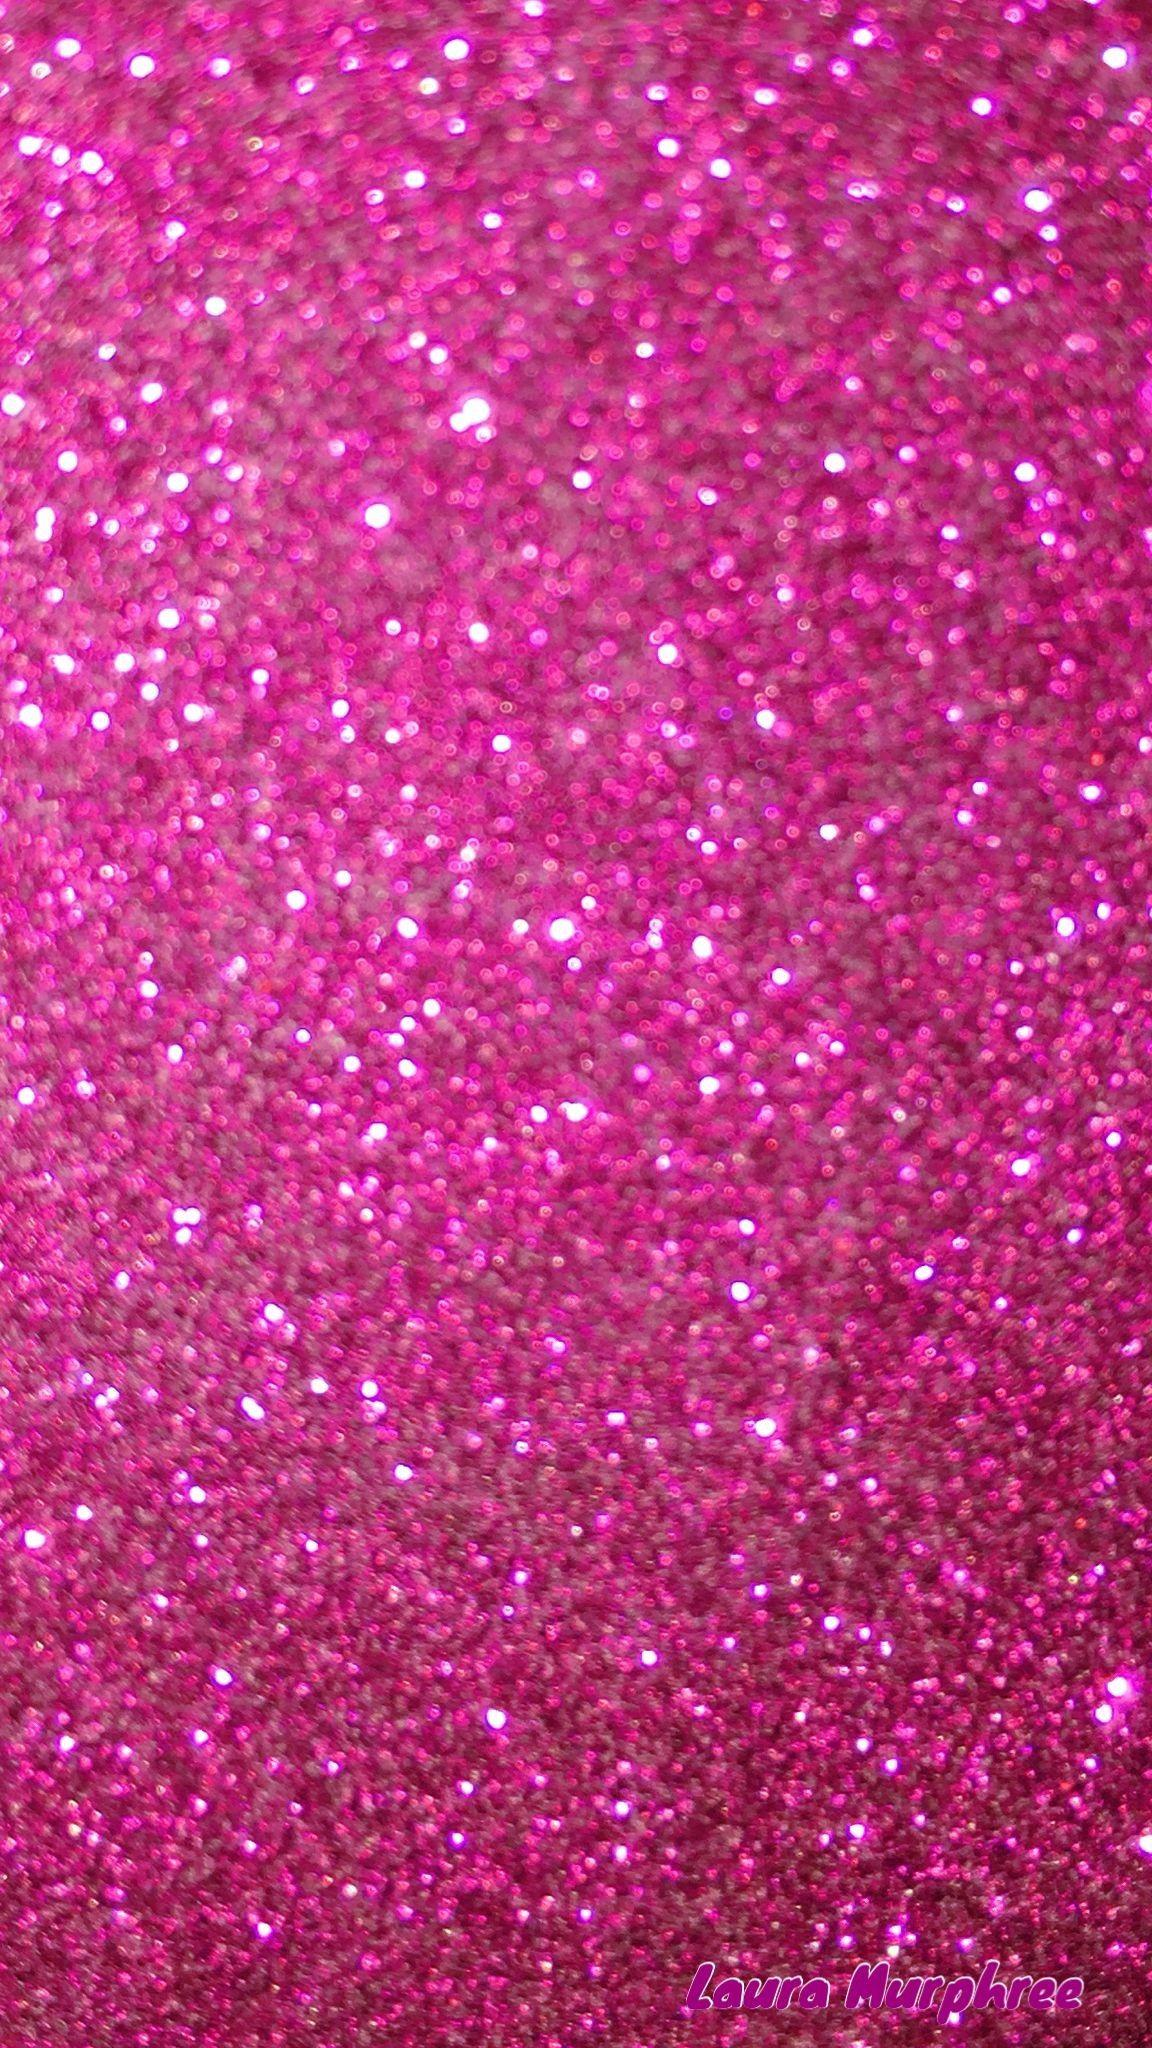 Light Pink Glitter Wallpapers - Wallpaper Cave